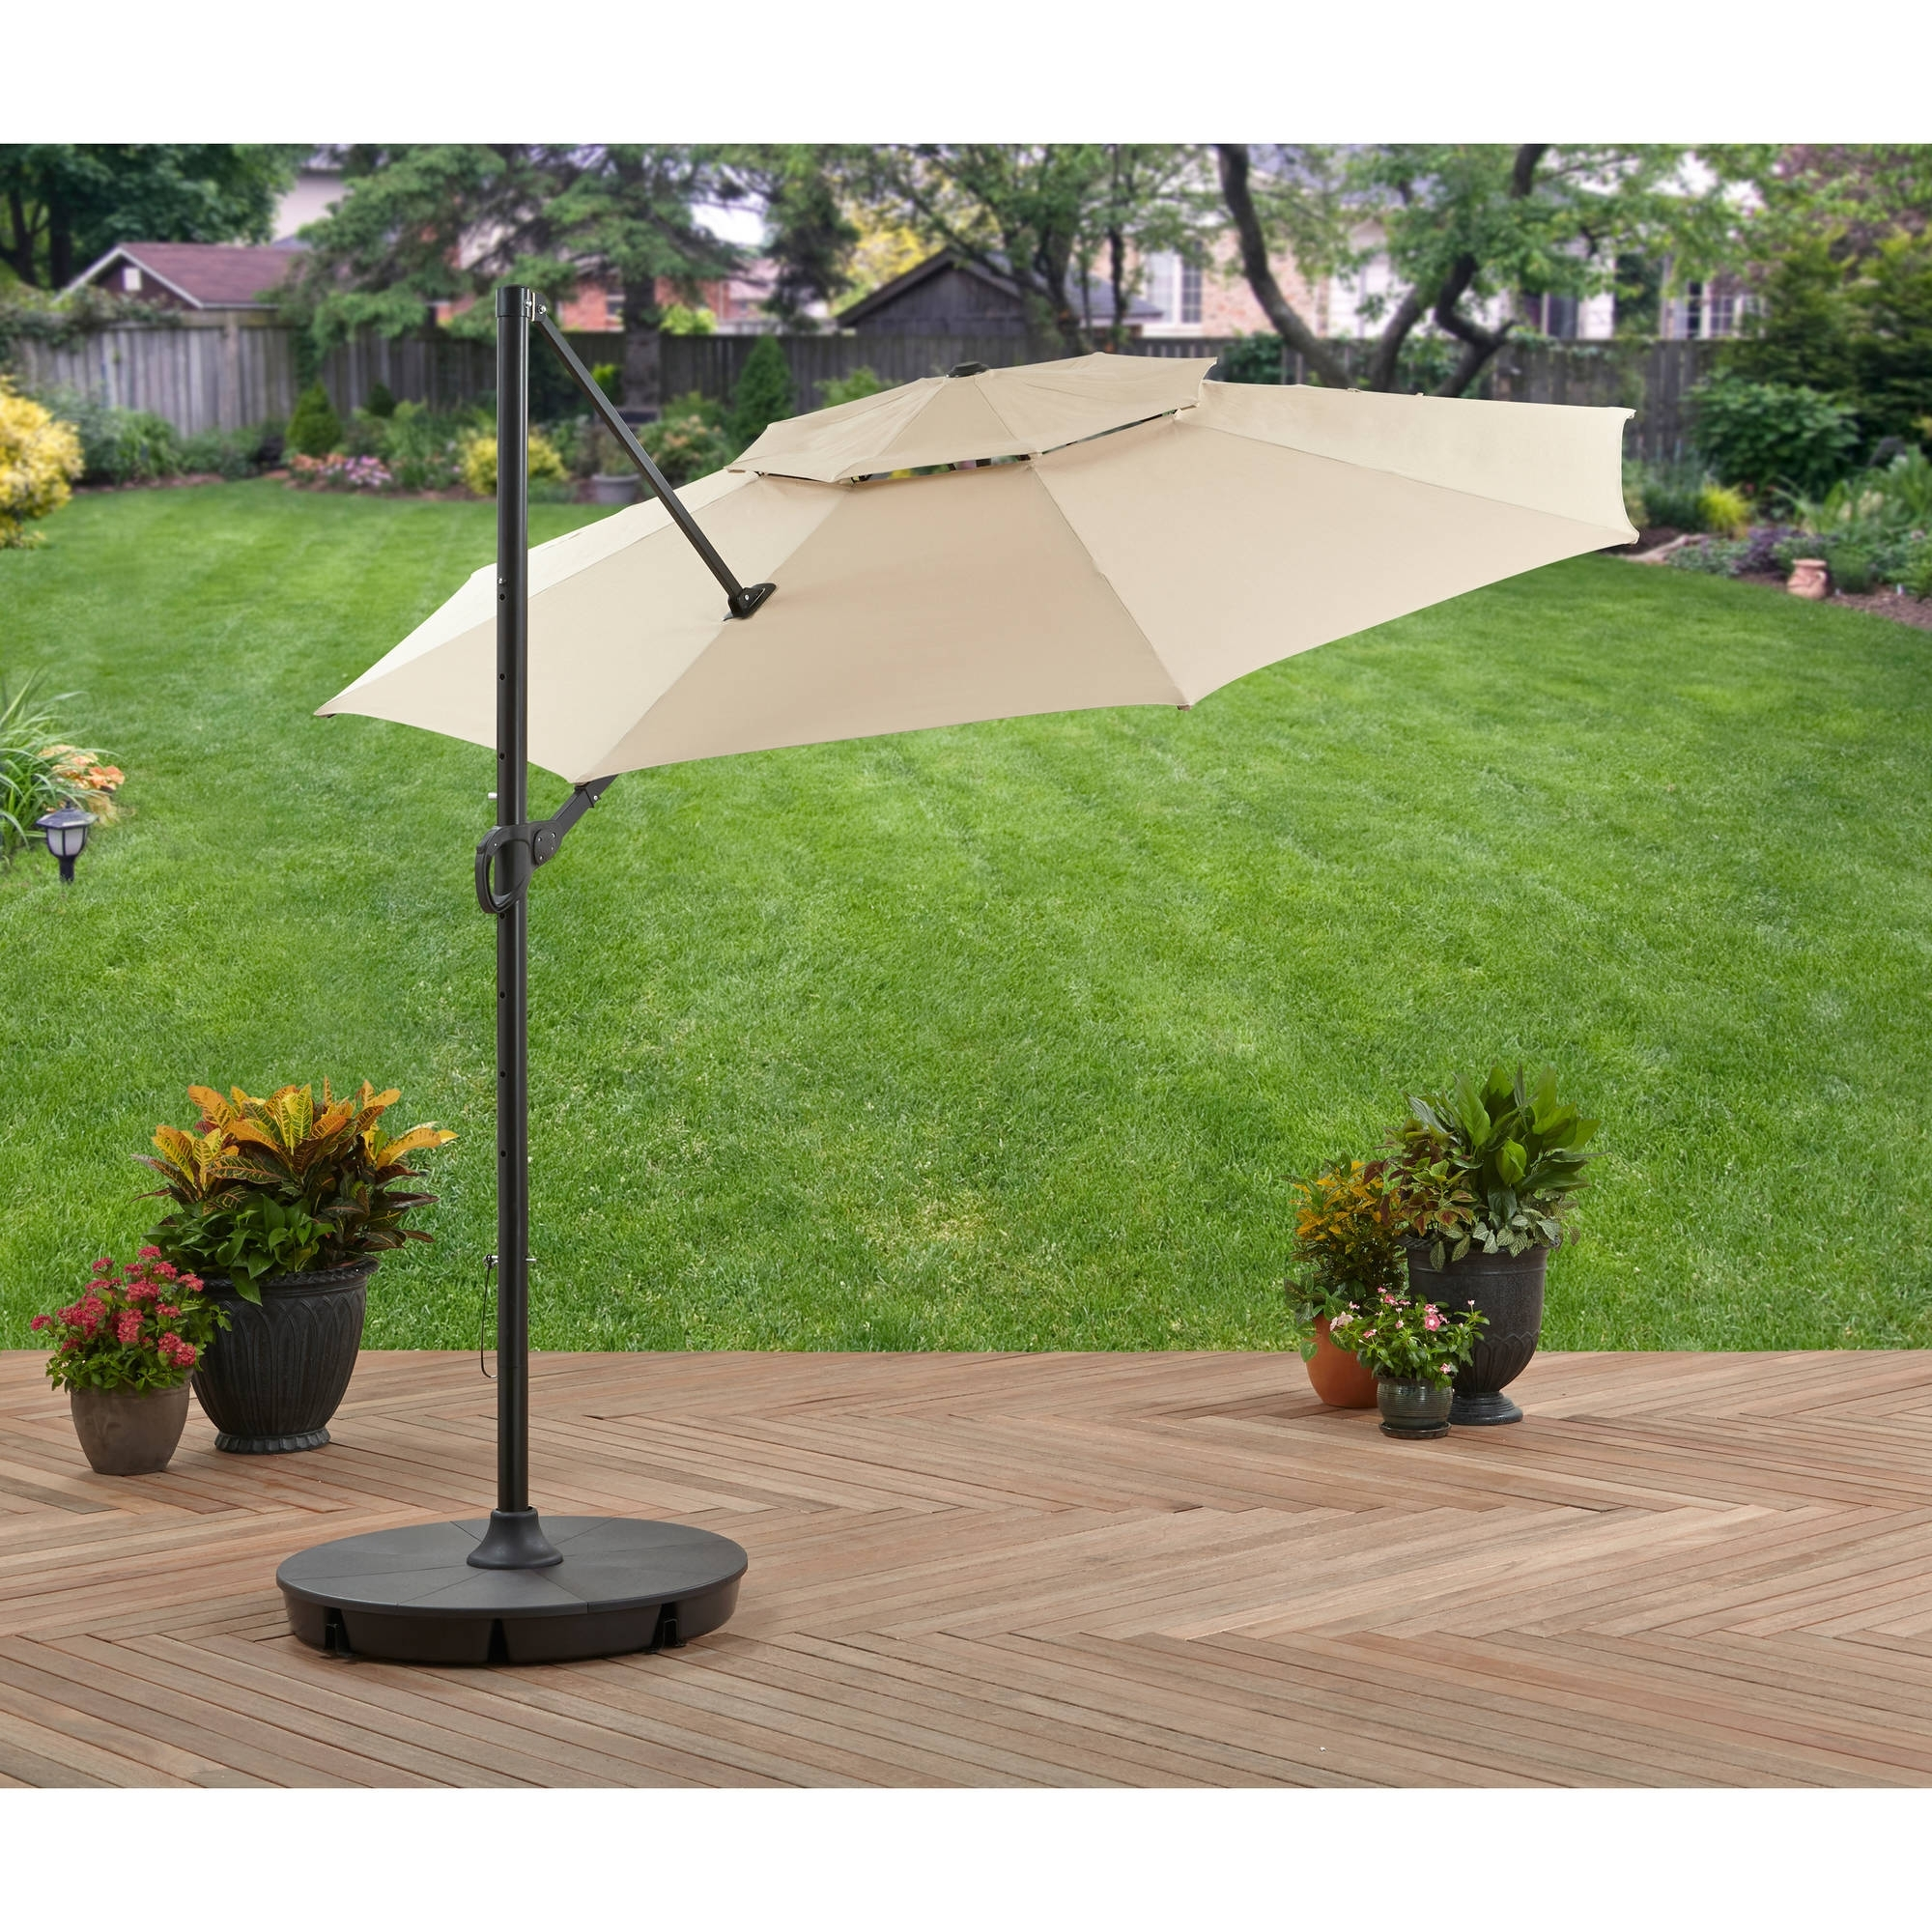 Well Liked Offset Patio Umbrellas With Base With Regard To Better Homes And Gardens 11' Offset Umbrella With Base, Tan (View 13 of 20)